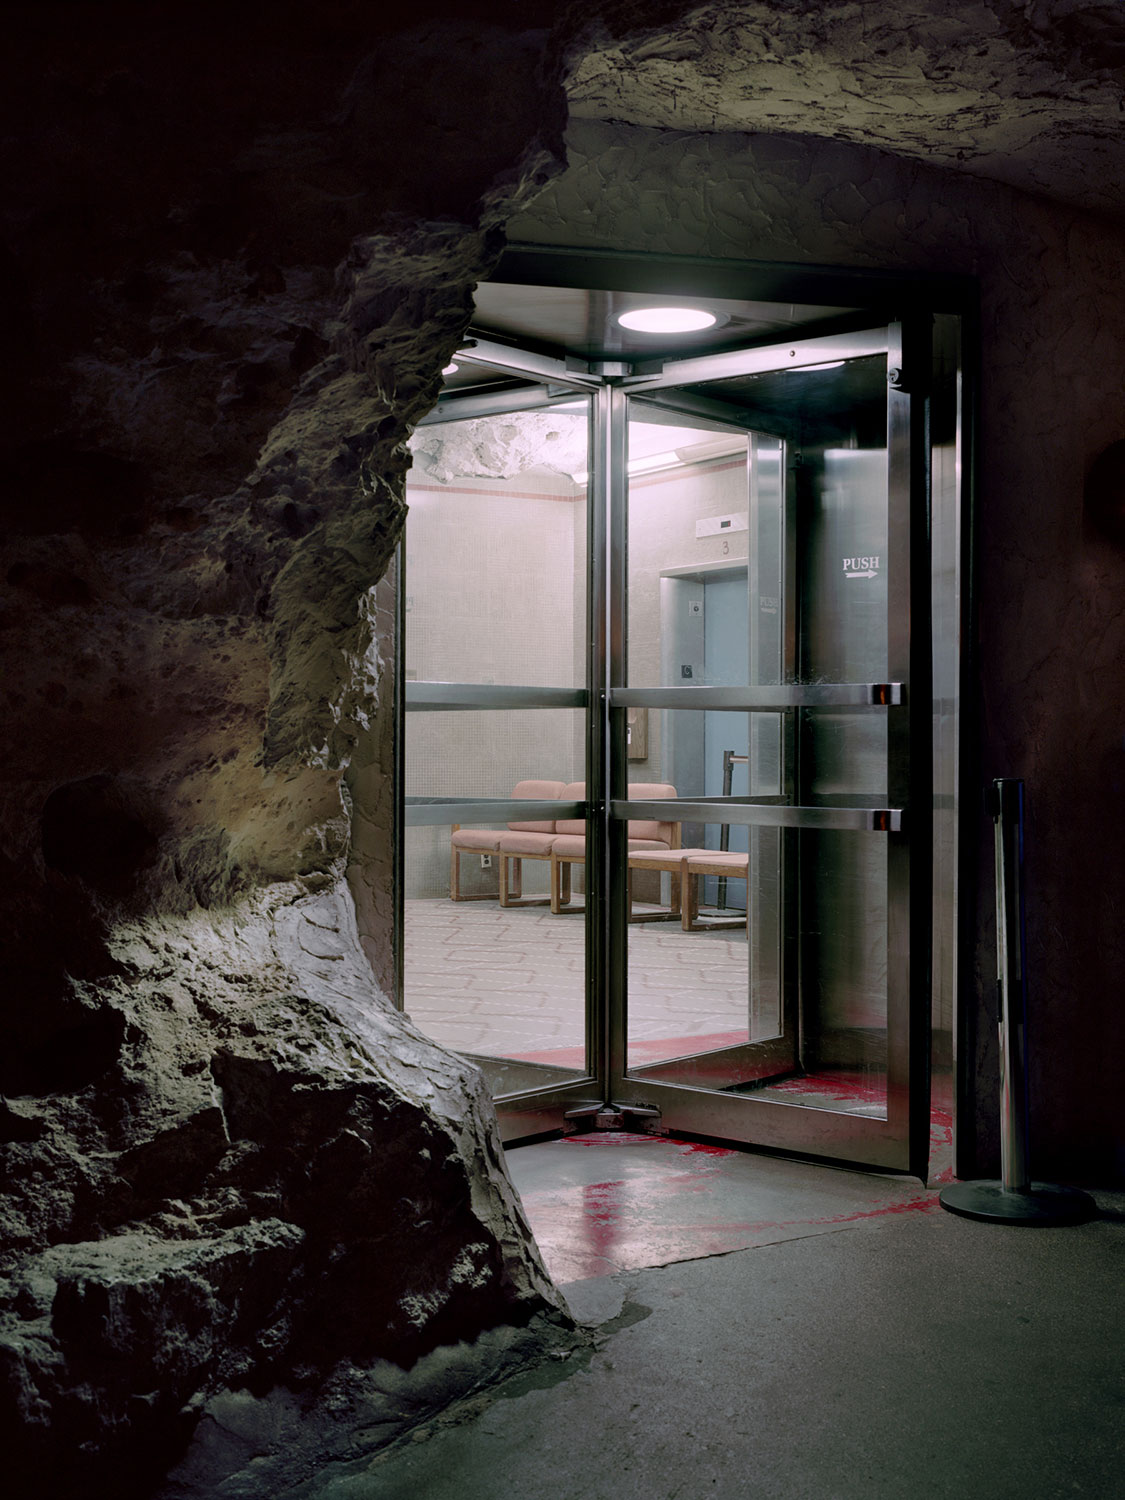 Austin Irving, Carlsbad Caverns Elevator Room, New Mexico, 2010.